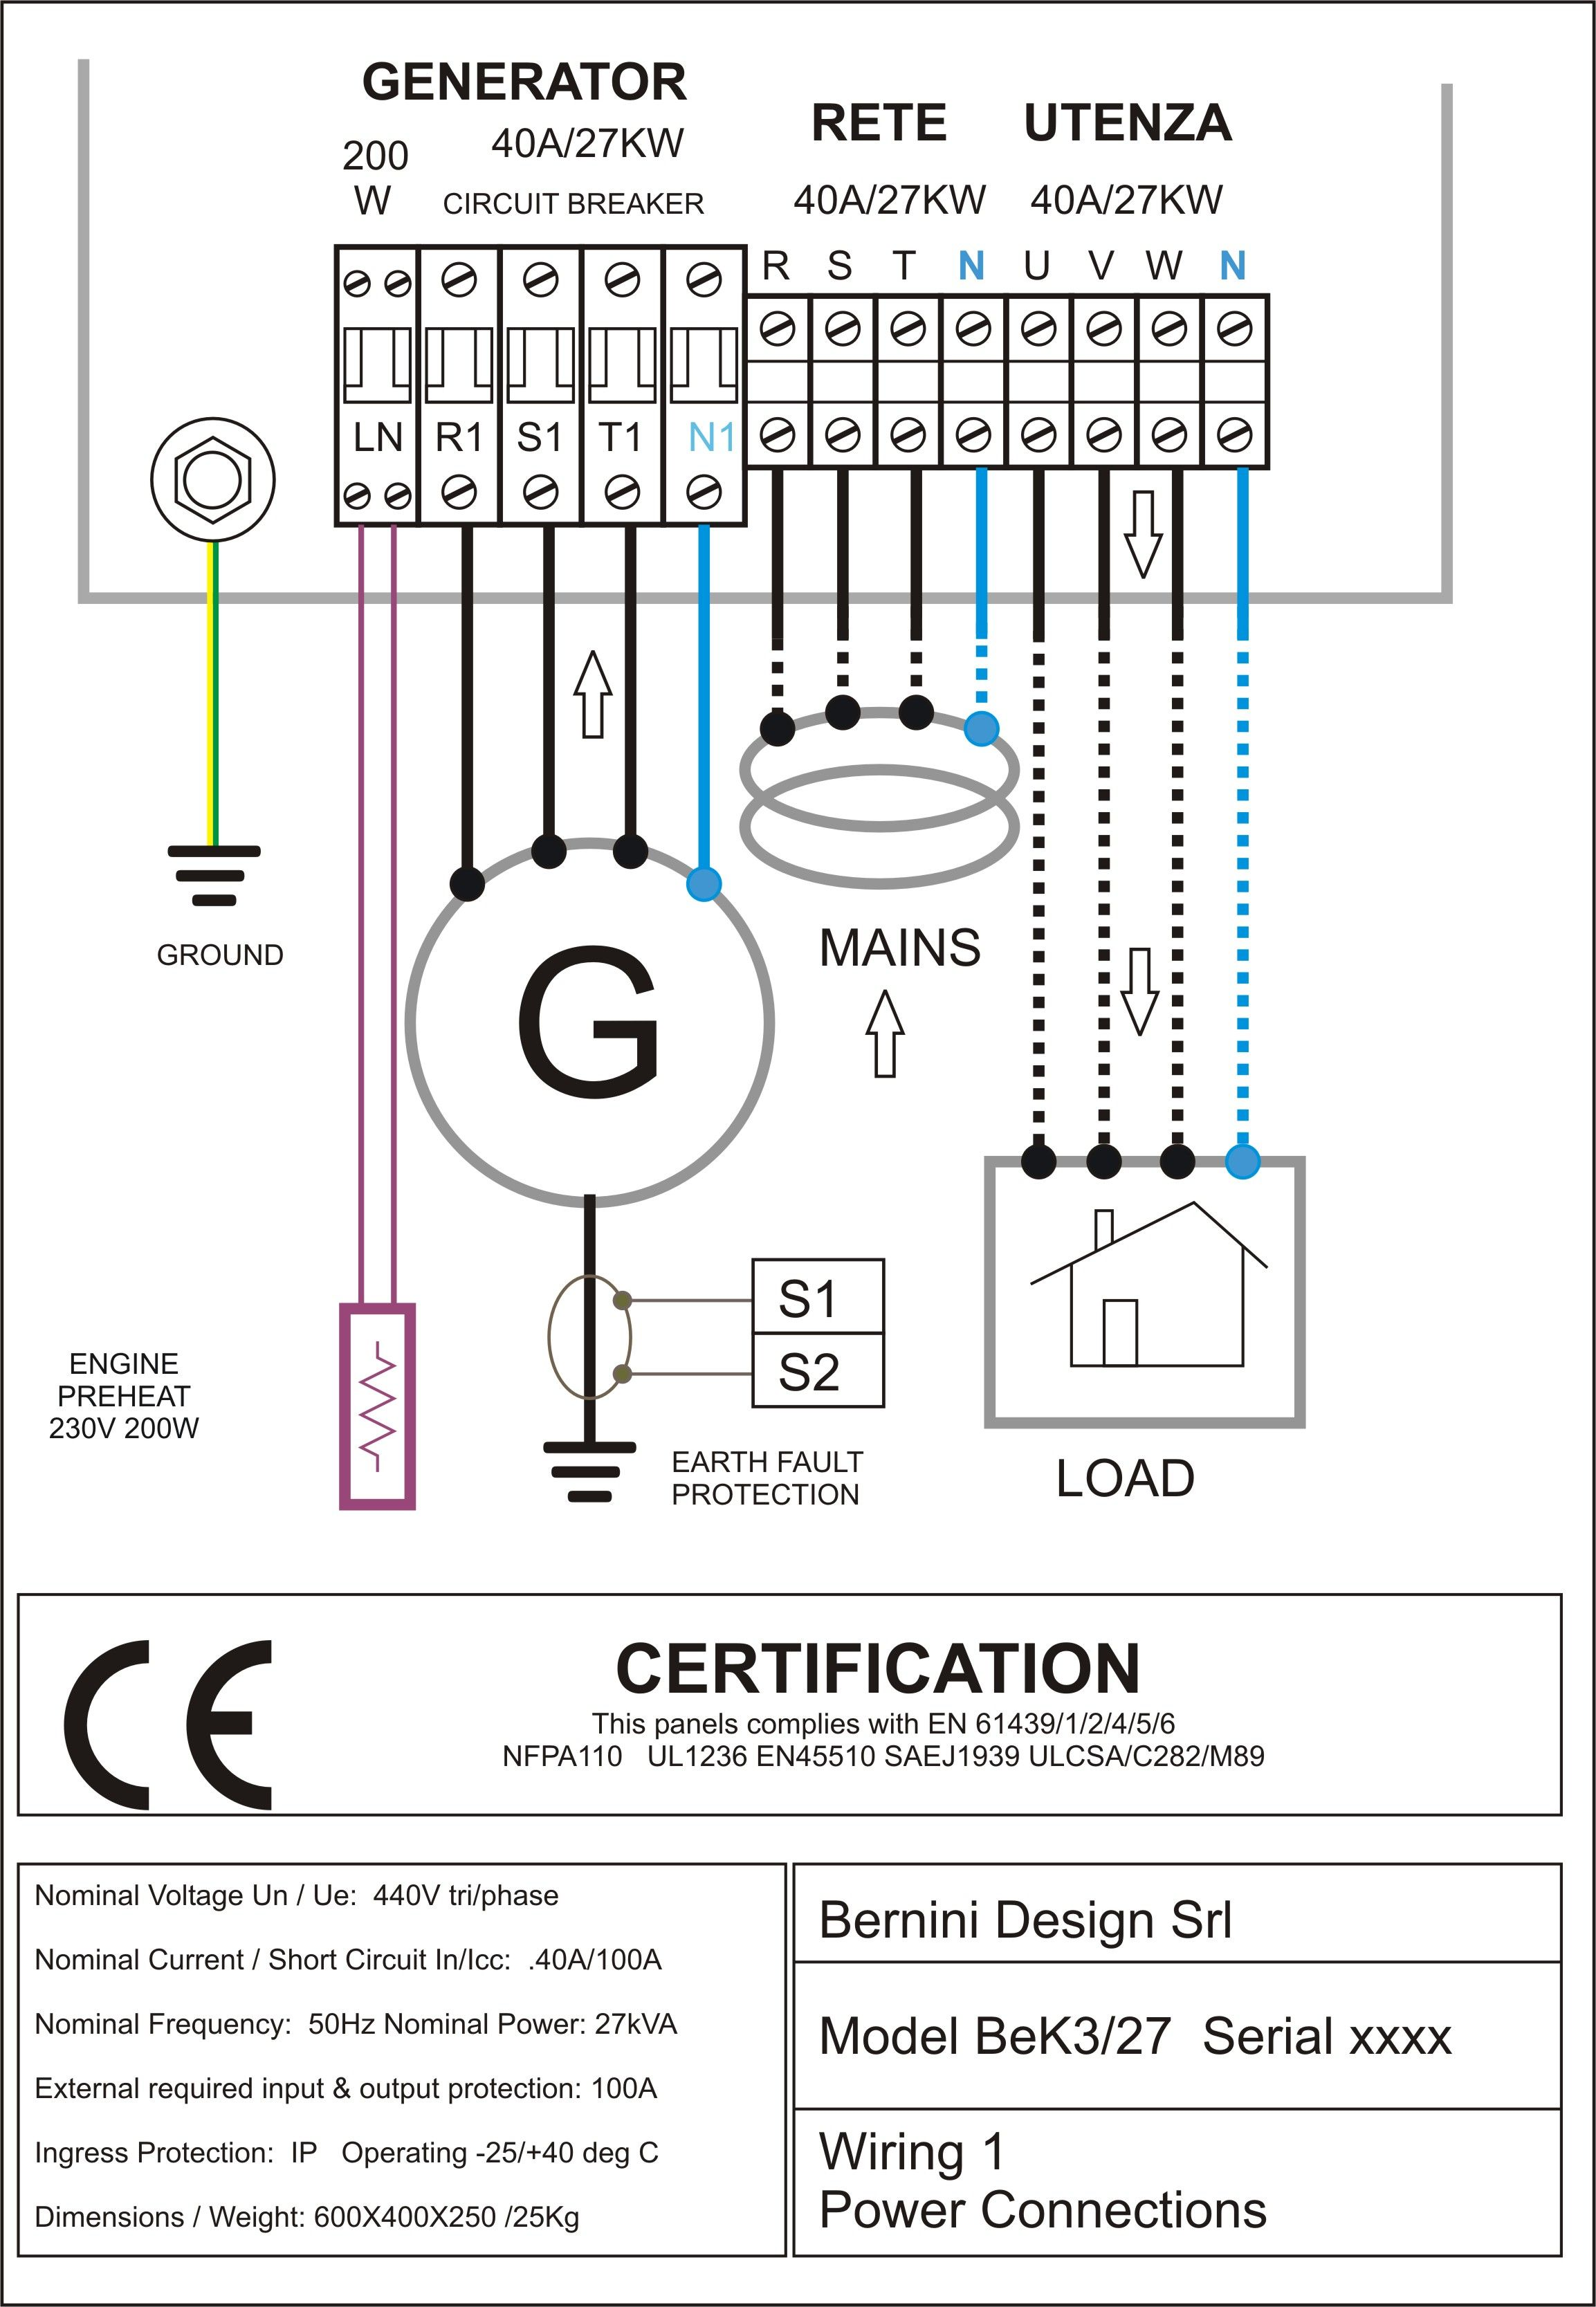 sel generator control panel wiring diagram AC Connections ... on water heaters diagrams, motor diagrams, electrical diagrams, basic hvac ladder diagrams, plc diagrams, lighting diagrams, security diagrams, 22 halo diagrams, control schematic, pinout diagrams, control room furniture, insulation diagrams, data diagrams, army echelons diagrams, power distribution diagrams, cctv diagrams, plumbing diagrams, refrigeration diagrams, troubleshooting diagrams, engineering diagrams,